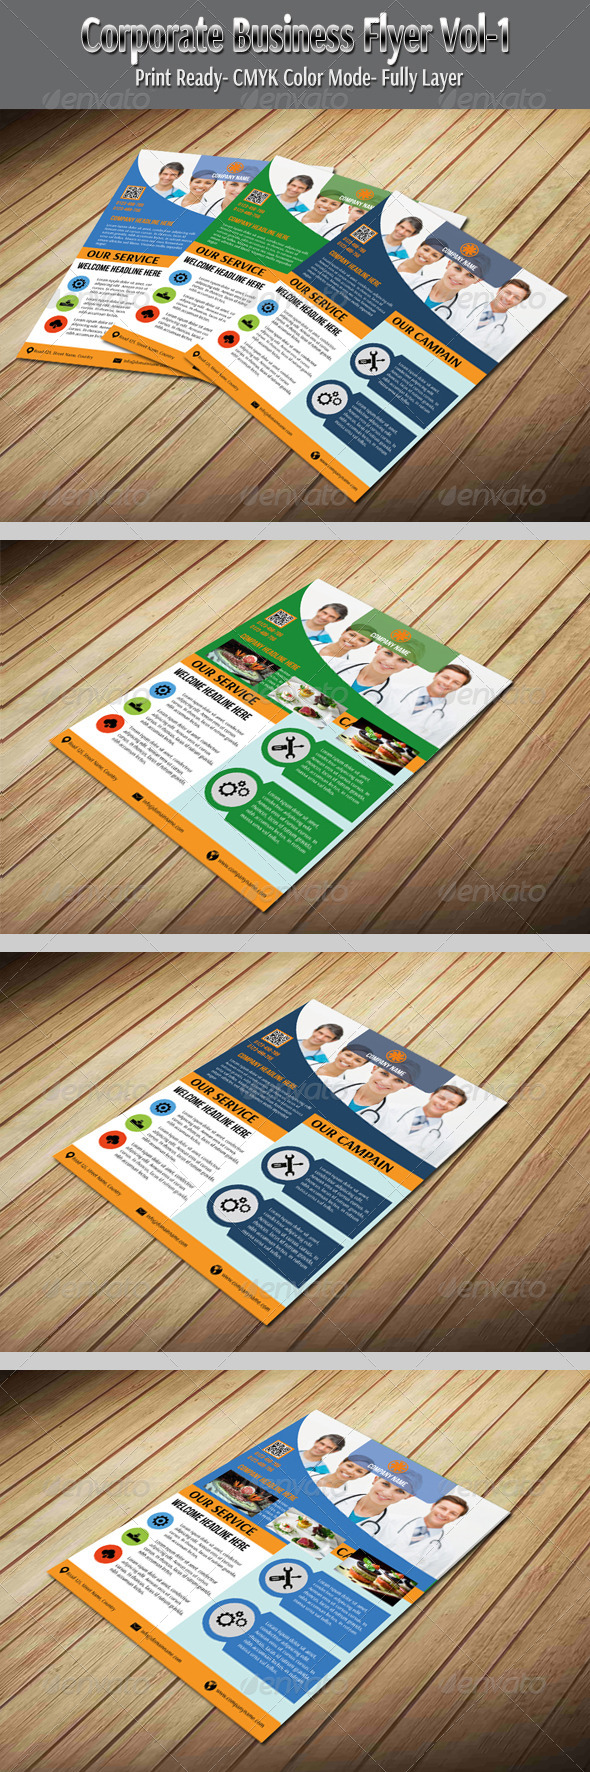 Corporate Business Flyer Vol-1 - Corporate Flyers